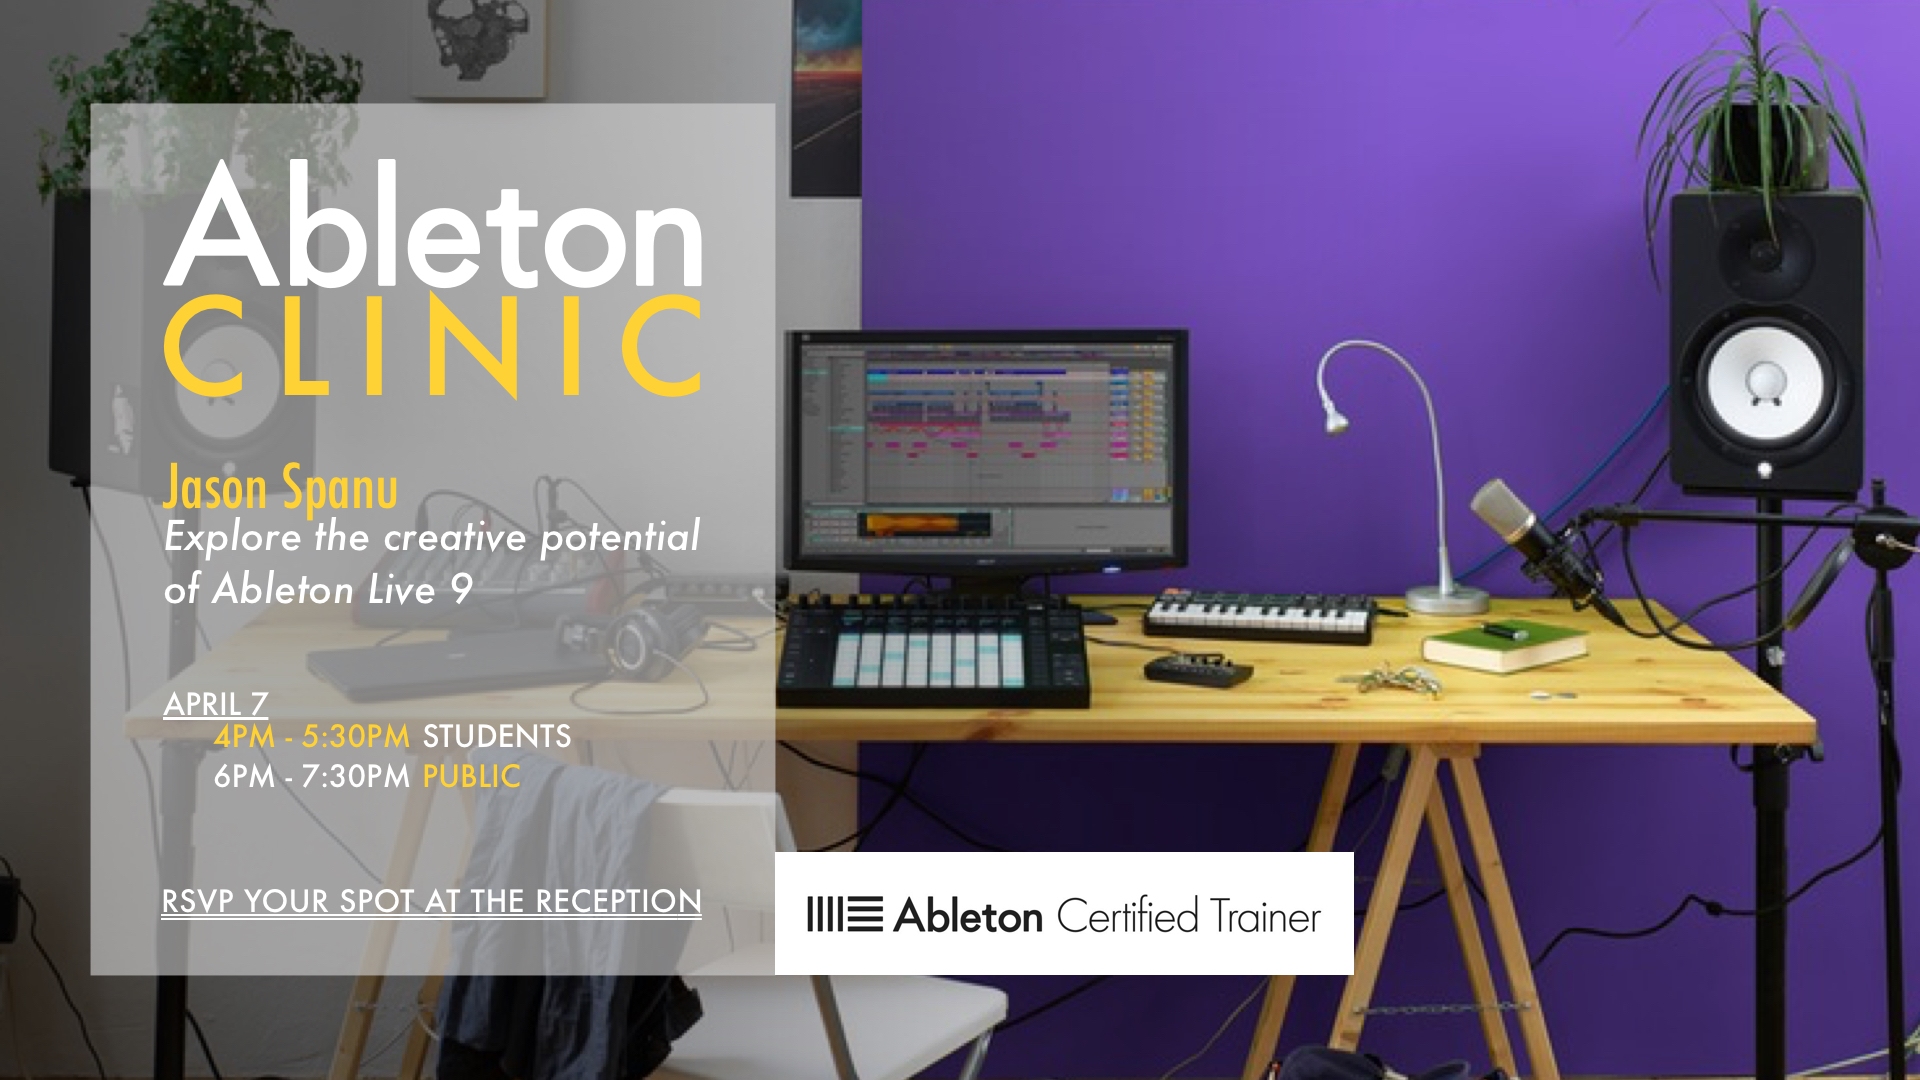 Ableton Live 9 Clinic with Ableton Live Certified Trainer Jason Spanu